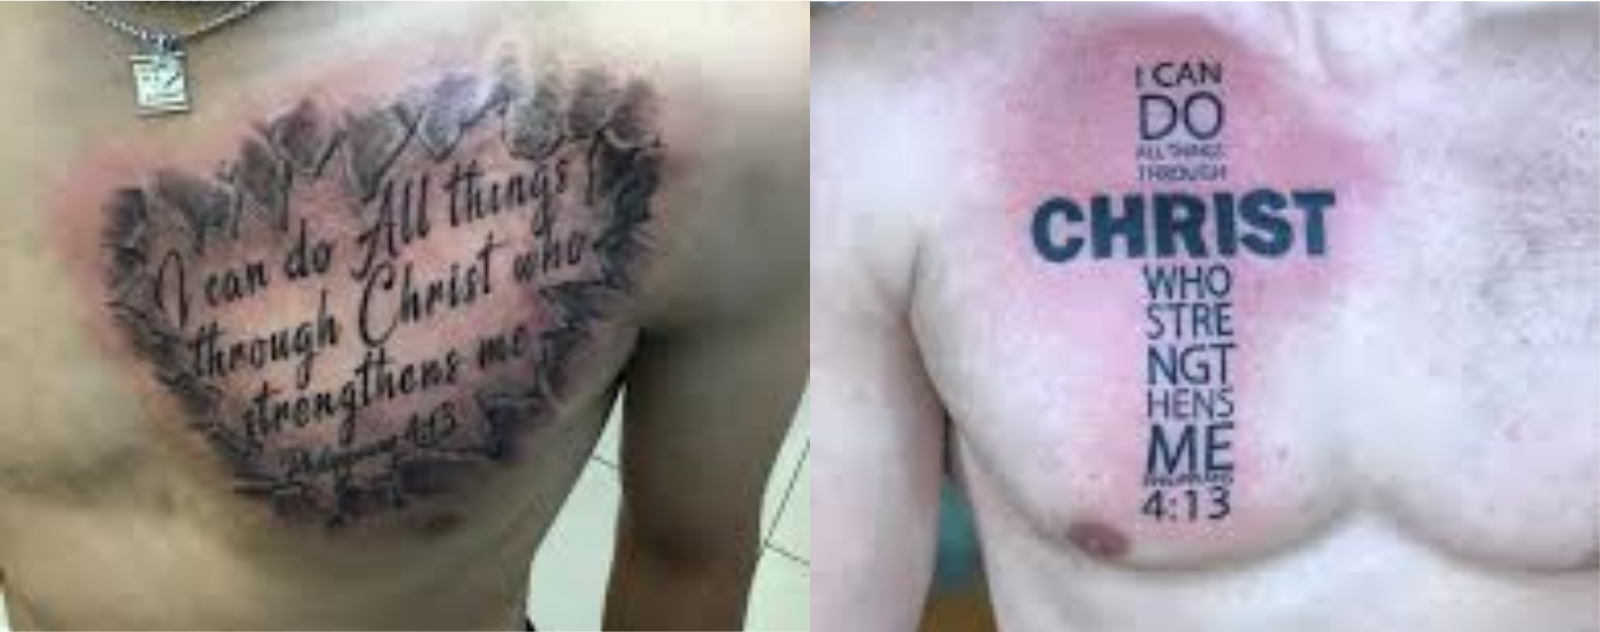 philippians-4-13-tattoo-chest-10